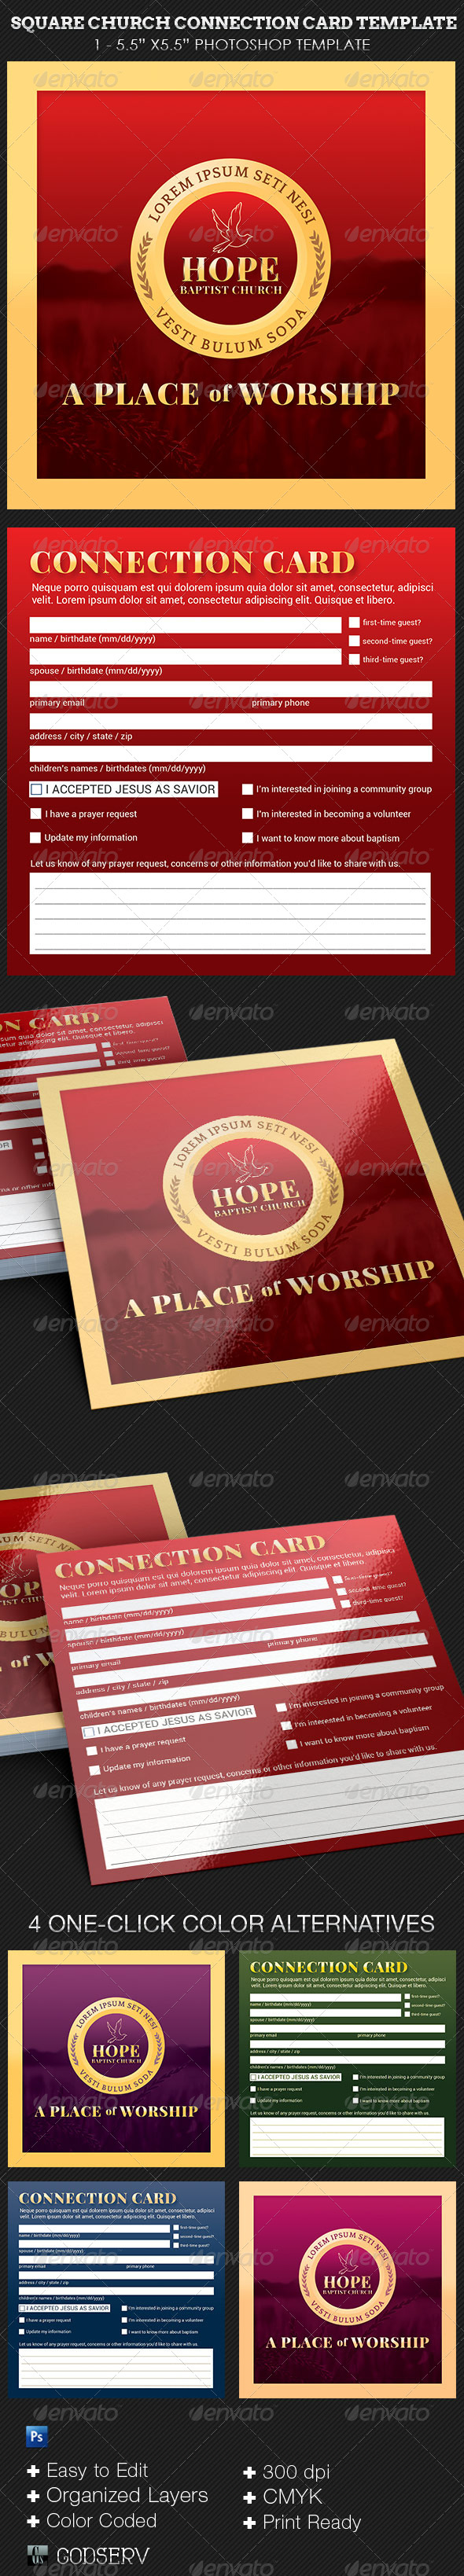 GraphicRiver Square Church Connection Card Template 8619415